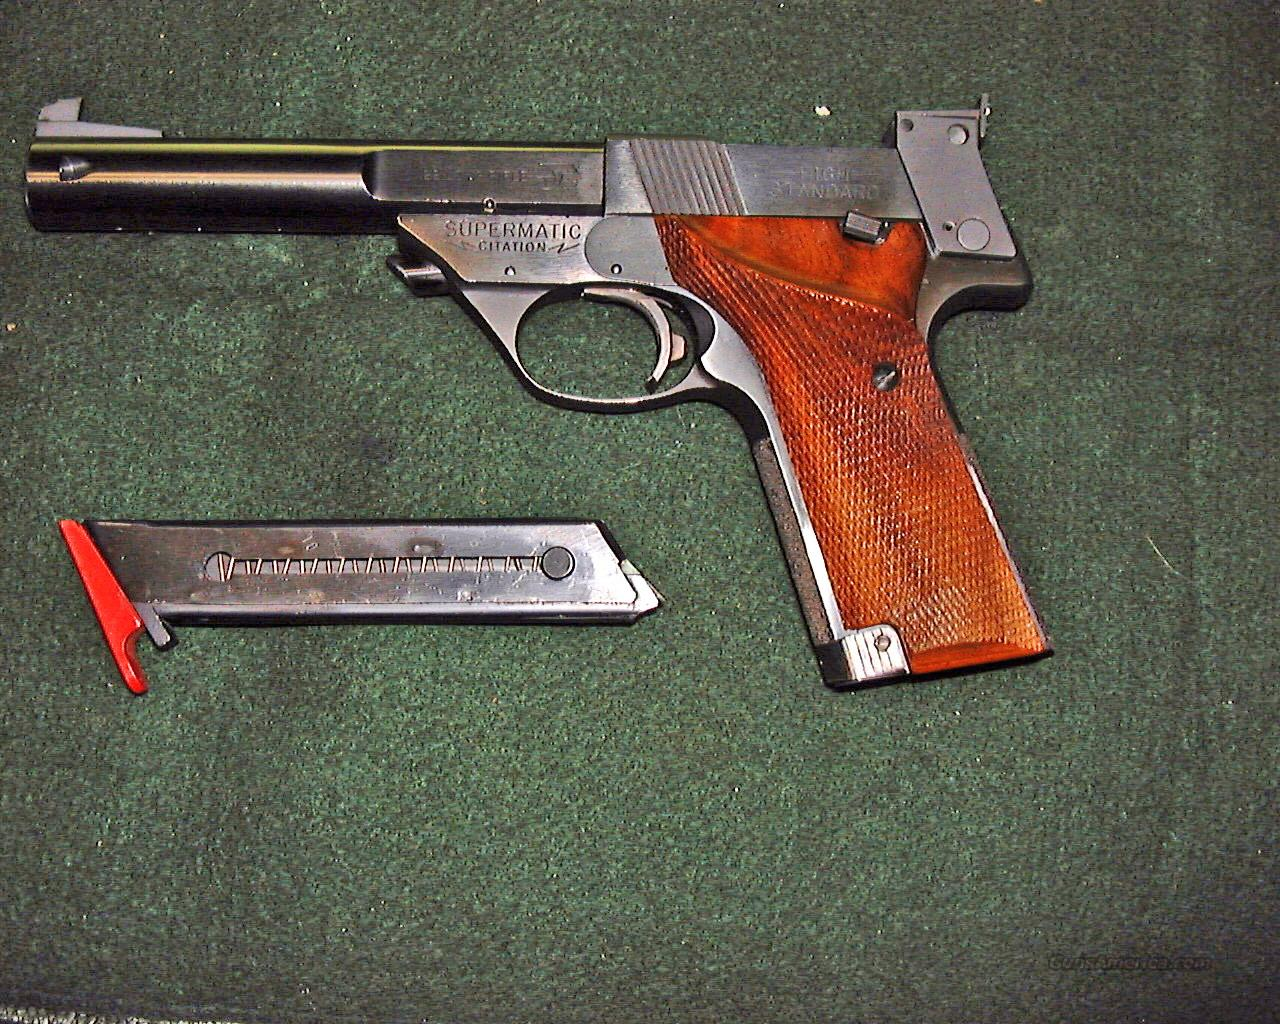 High Standard Supermatic Citation Model106 Military  Guns > Pistols > High Standard Pistols